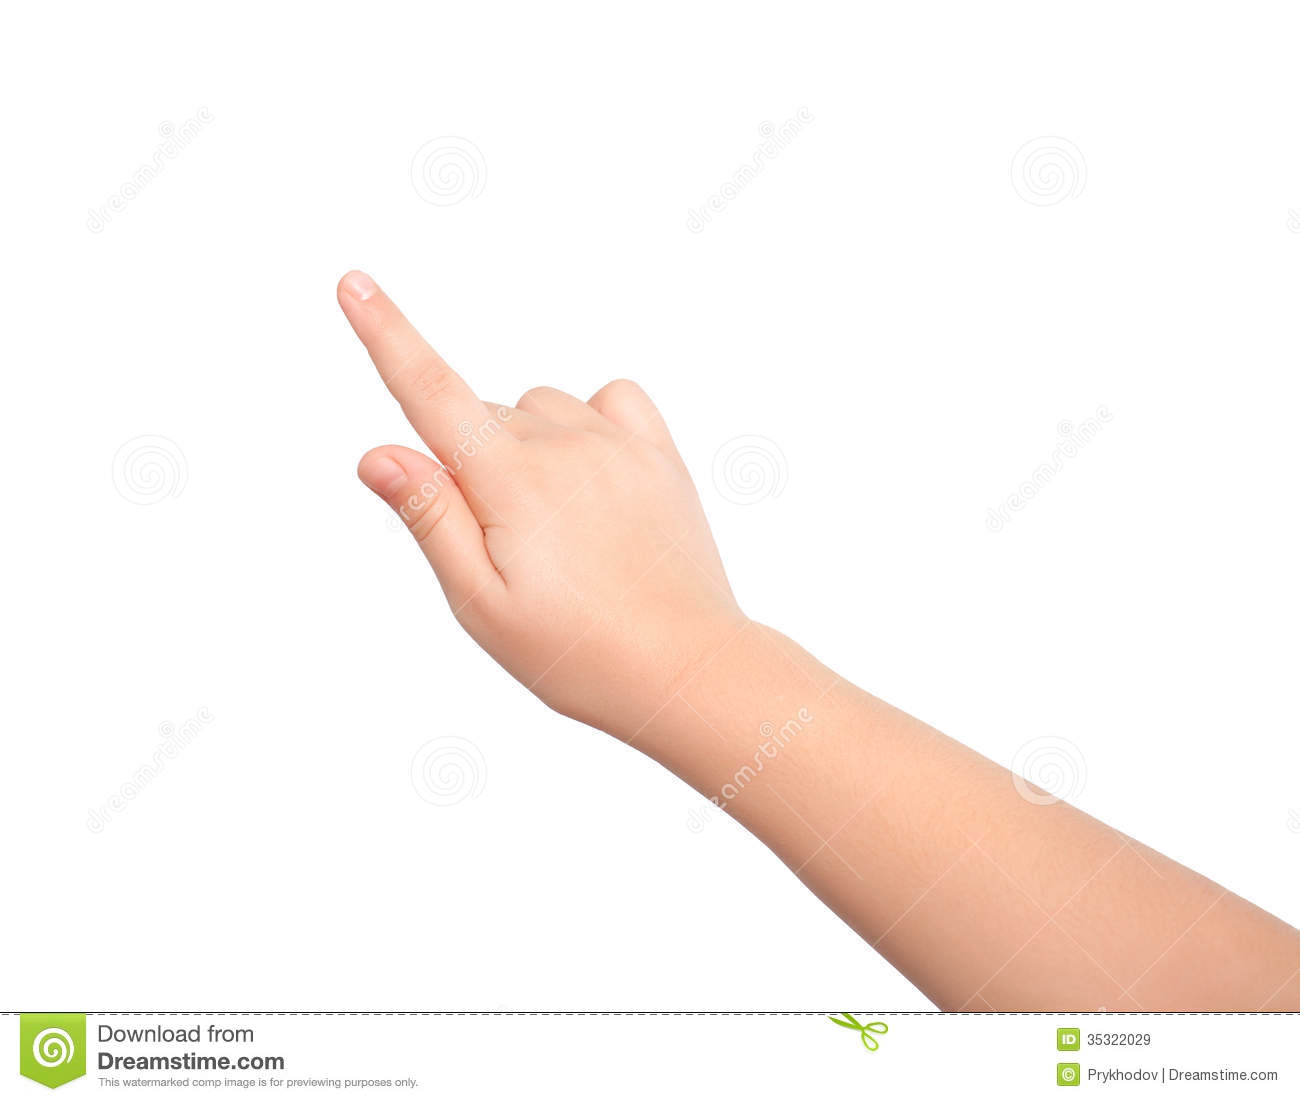 Isolated Child Hand Touching Or Pointing To Something Royalty Free Stock Images - Image: 35322029